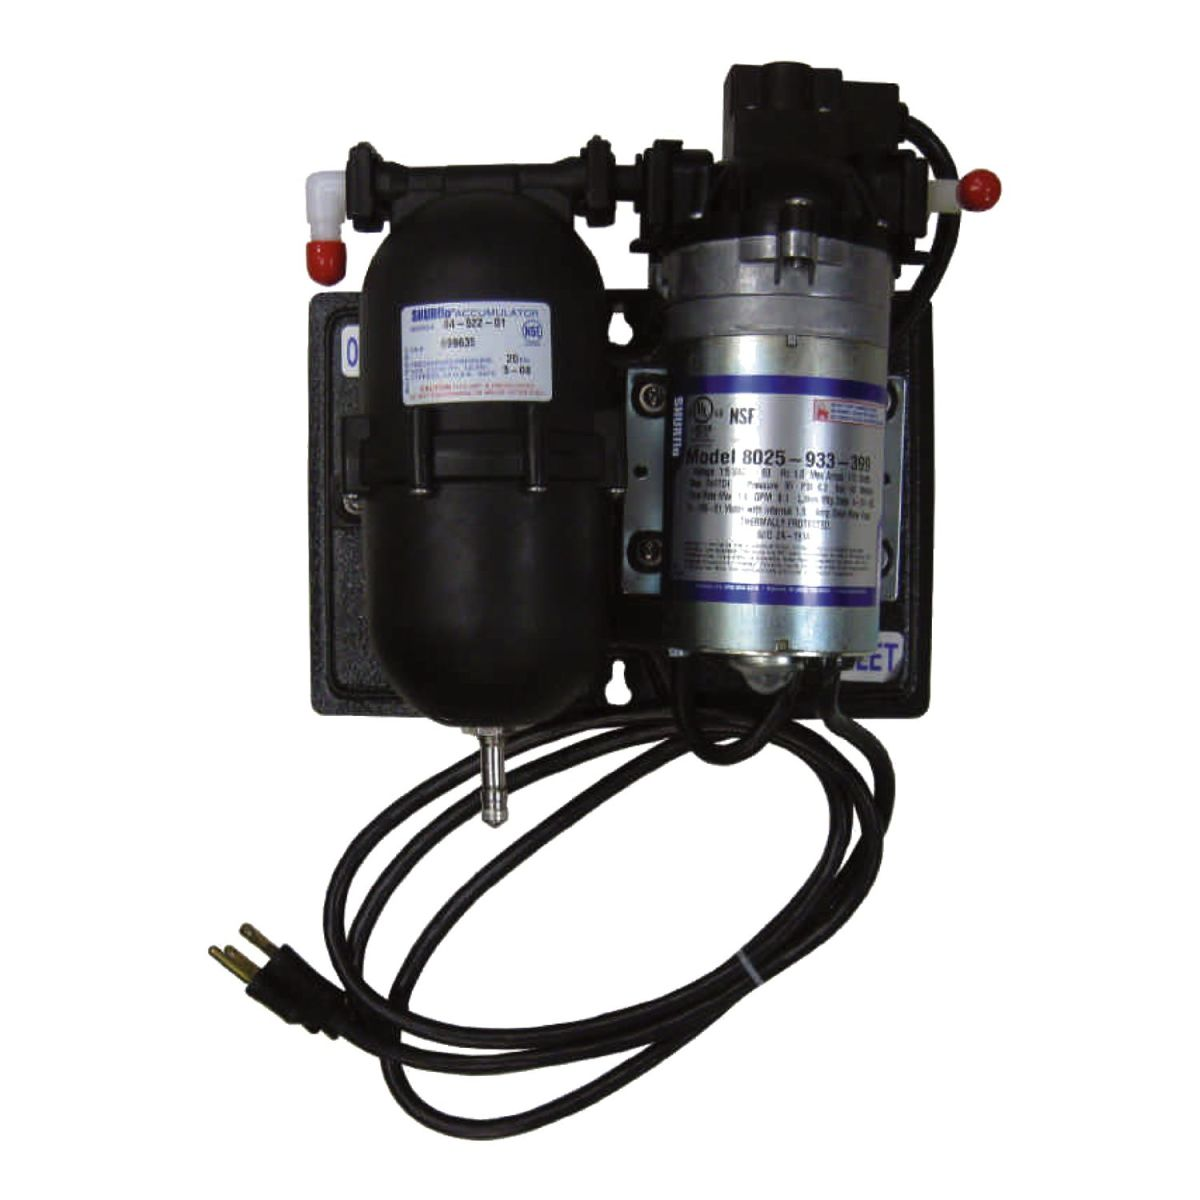 BOOSTER PUMP KIT W/.357 HOSES